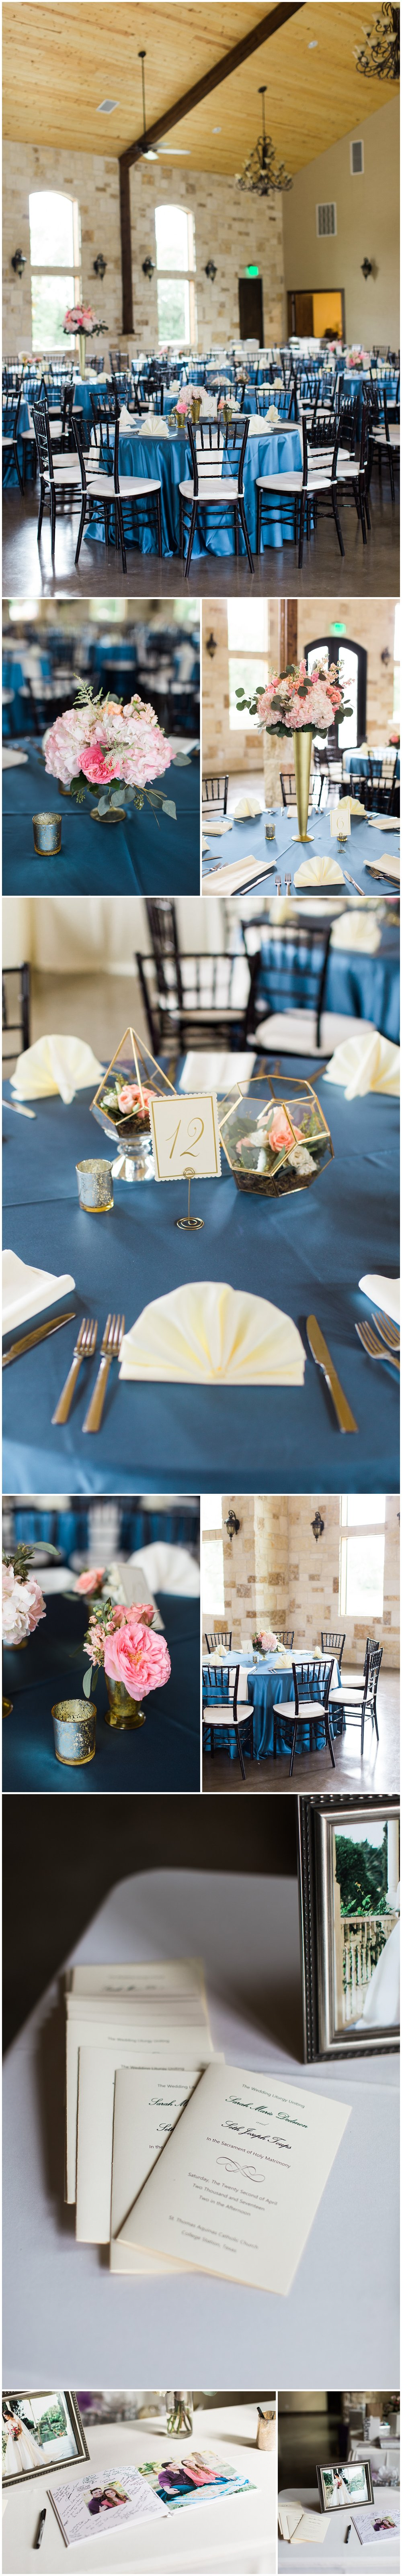 Brownstone_Reserve_Wedding_Kristina_Ross_Photography_0027.jpg